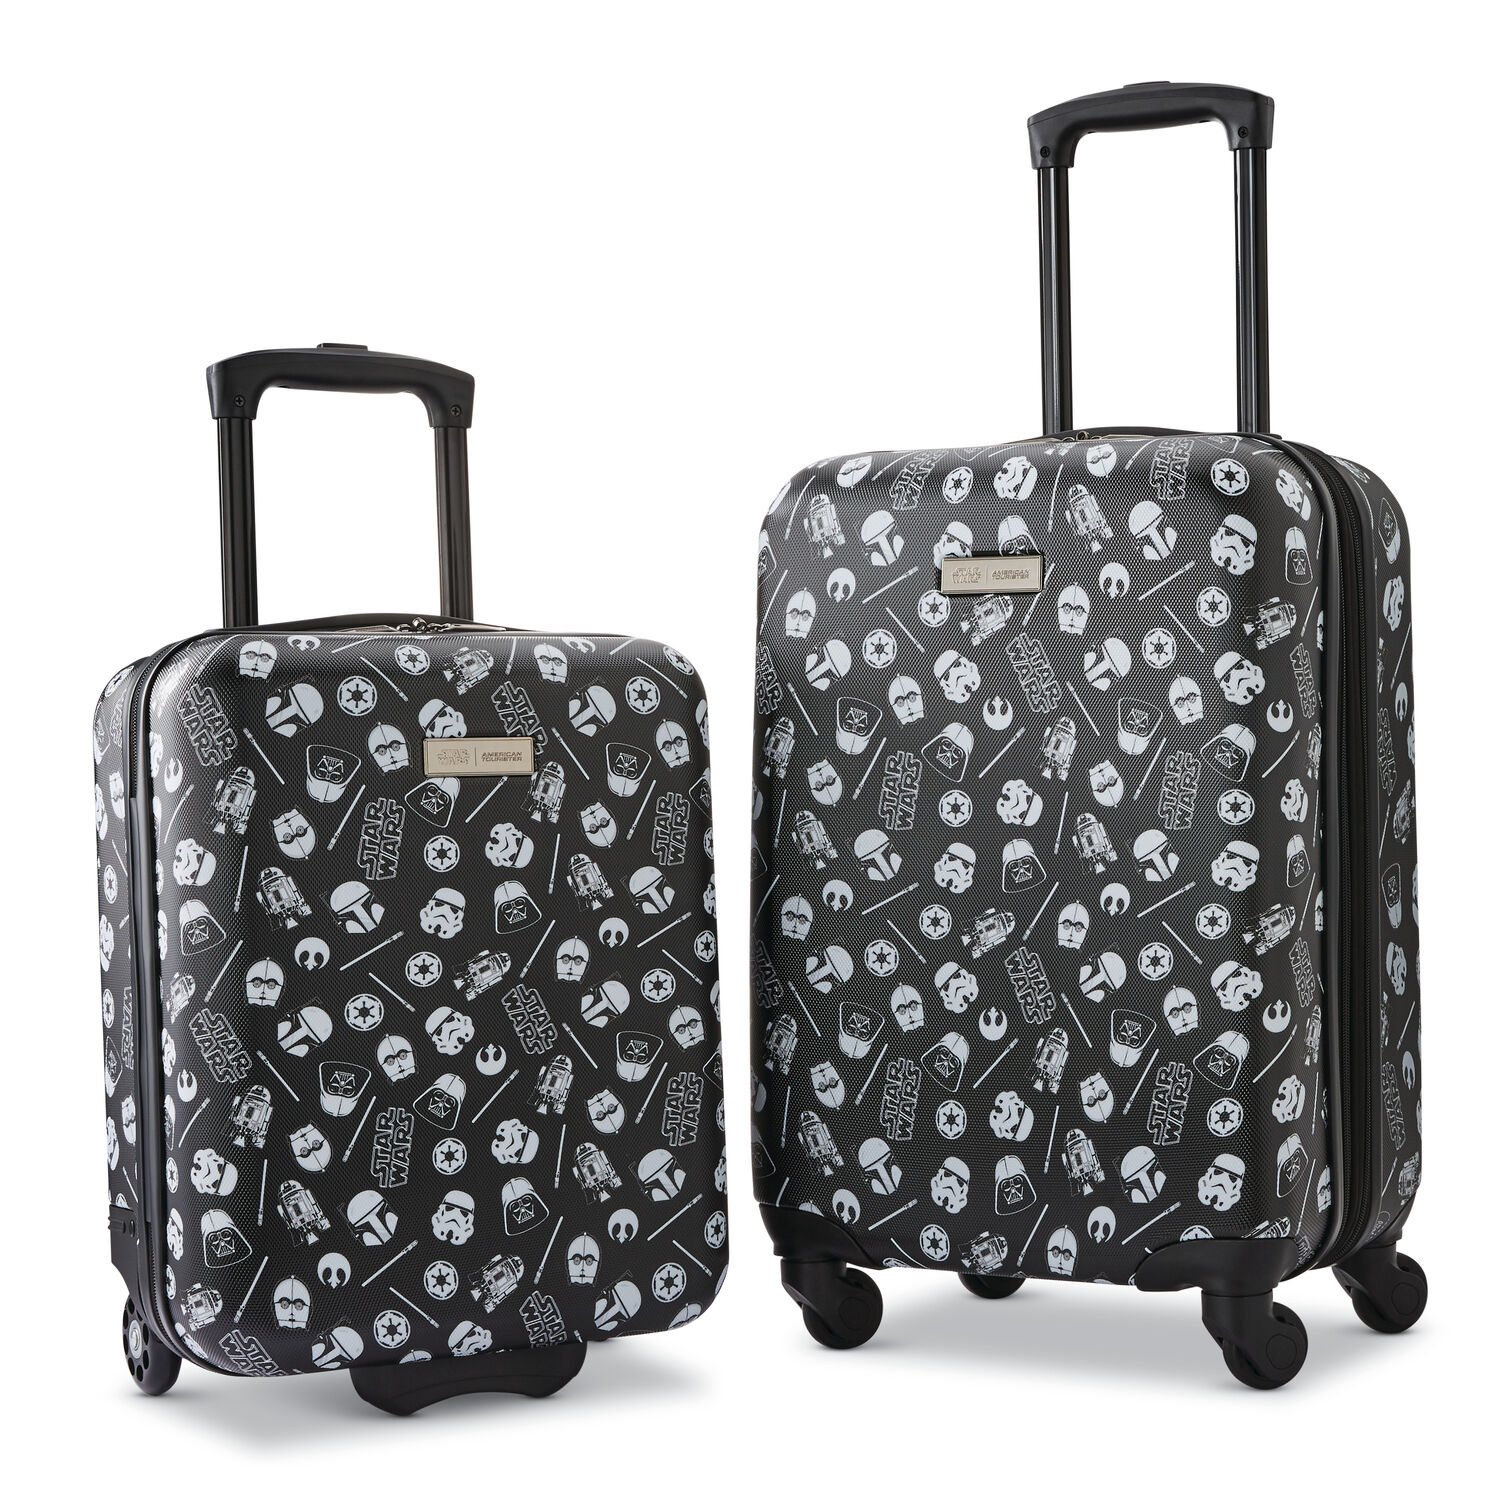 American Tourister Star Wars Roll Aboard 2 Piece Set (Underseater/Carry-On) in the color Star Wars Iconic.